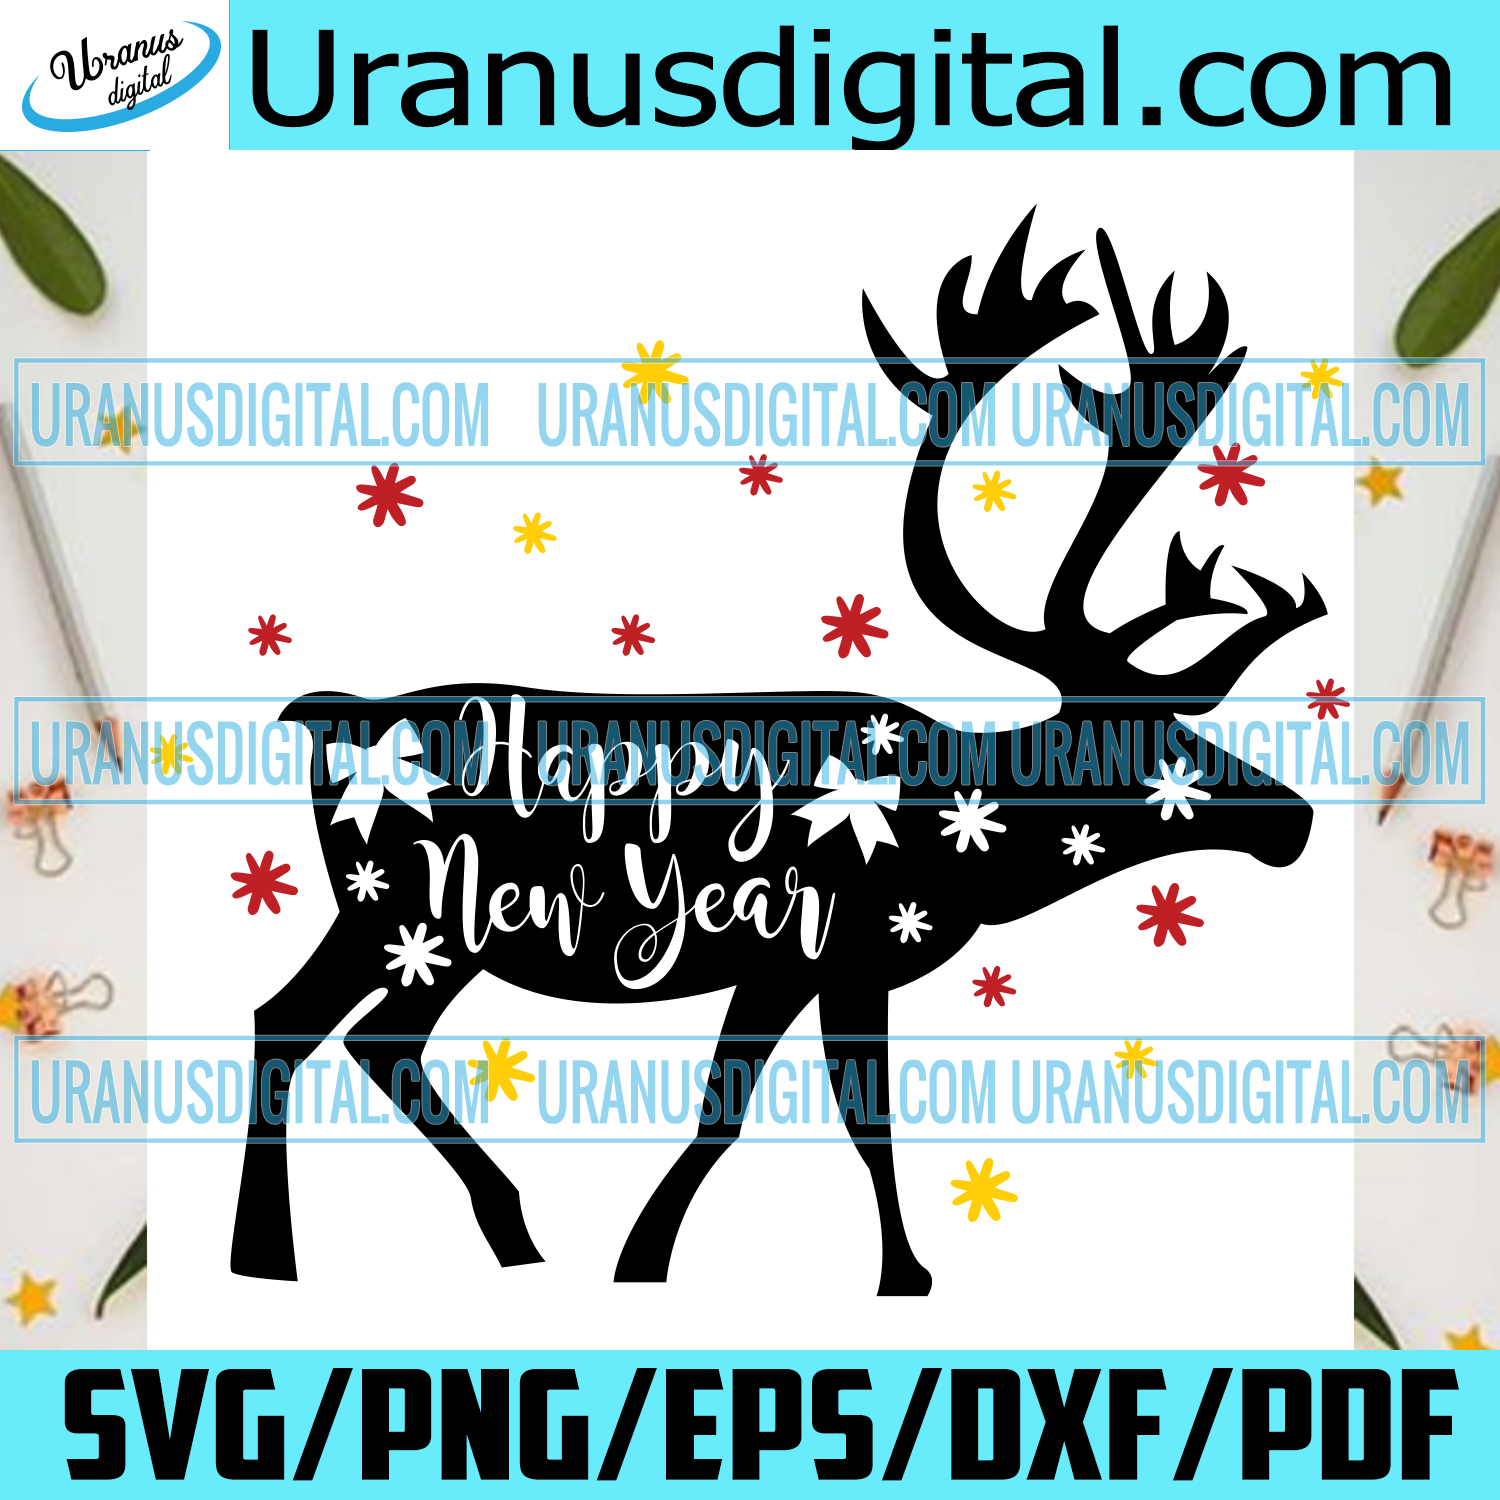 Happy New Year, Christmas Svg, Reindeer Svg, Reindeer Shirt, Reindeer Gift, Love Reindeer, Christmas Reindeer, Christmas Gift Box, Christmas Bell Svg, Christmas Gift, Claus Svg, Love Claus, Noel Svg, Christmas Icon